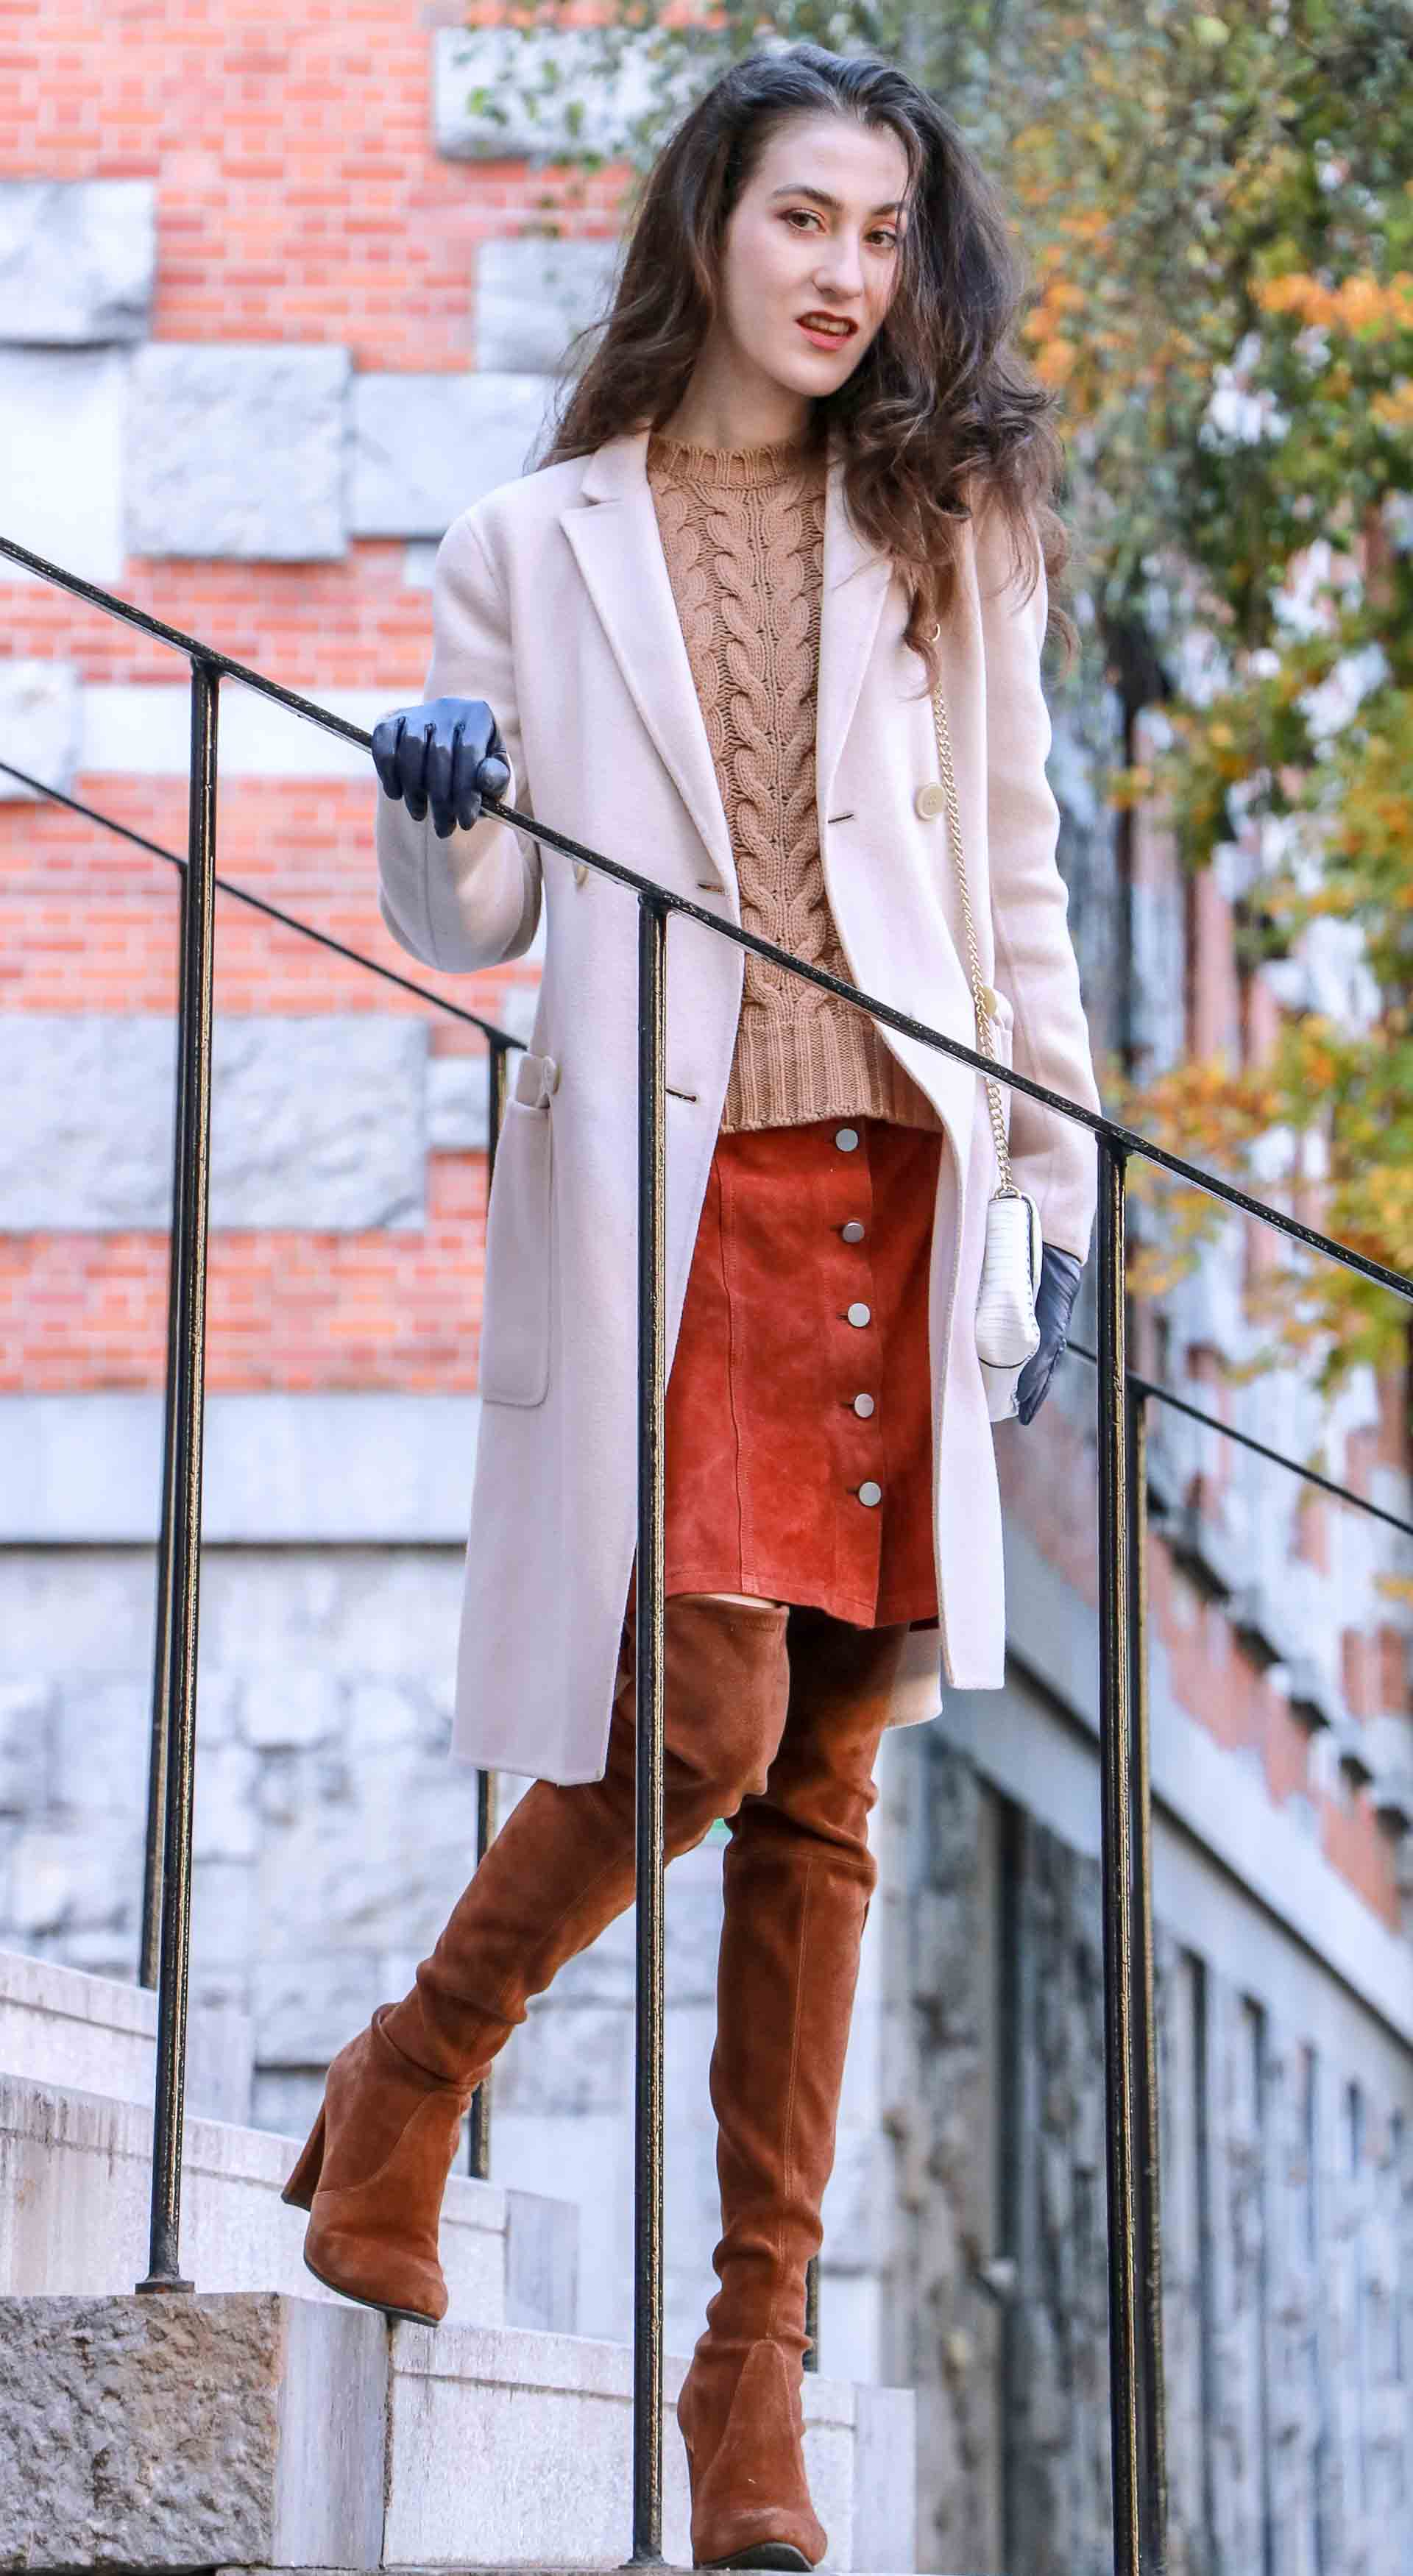 Beautiful Slovenian Fashion Blogger Veronika Lipar of Brunette from Wall dressed in Max Mara camel cable knit sweater, front button brown suede skirt, Stuart Weitzman brown over the knee boots, Max Mara coat standing on the stairs